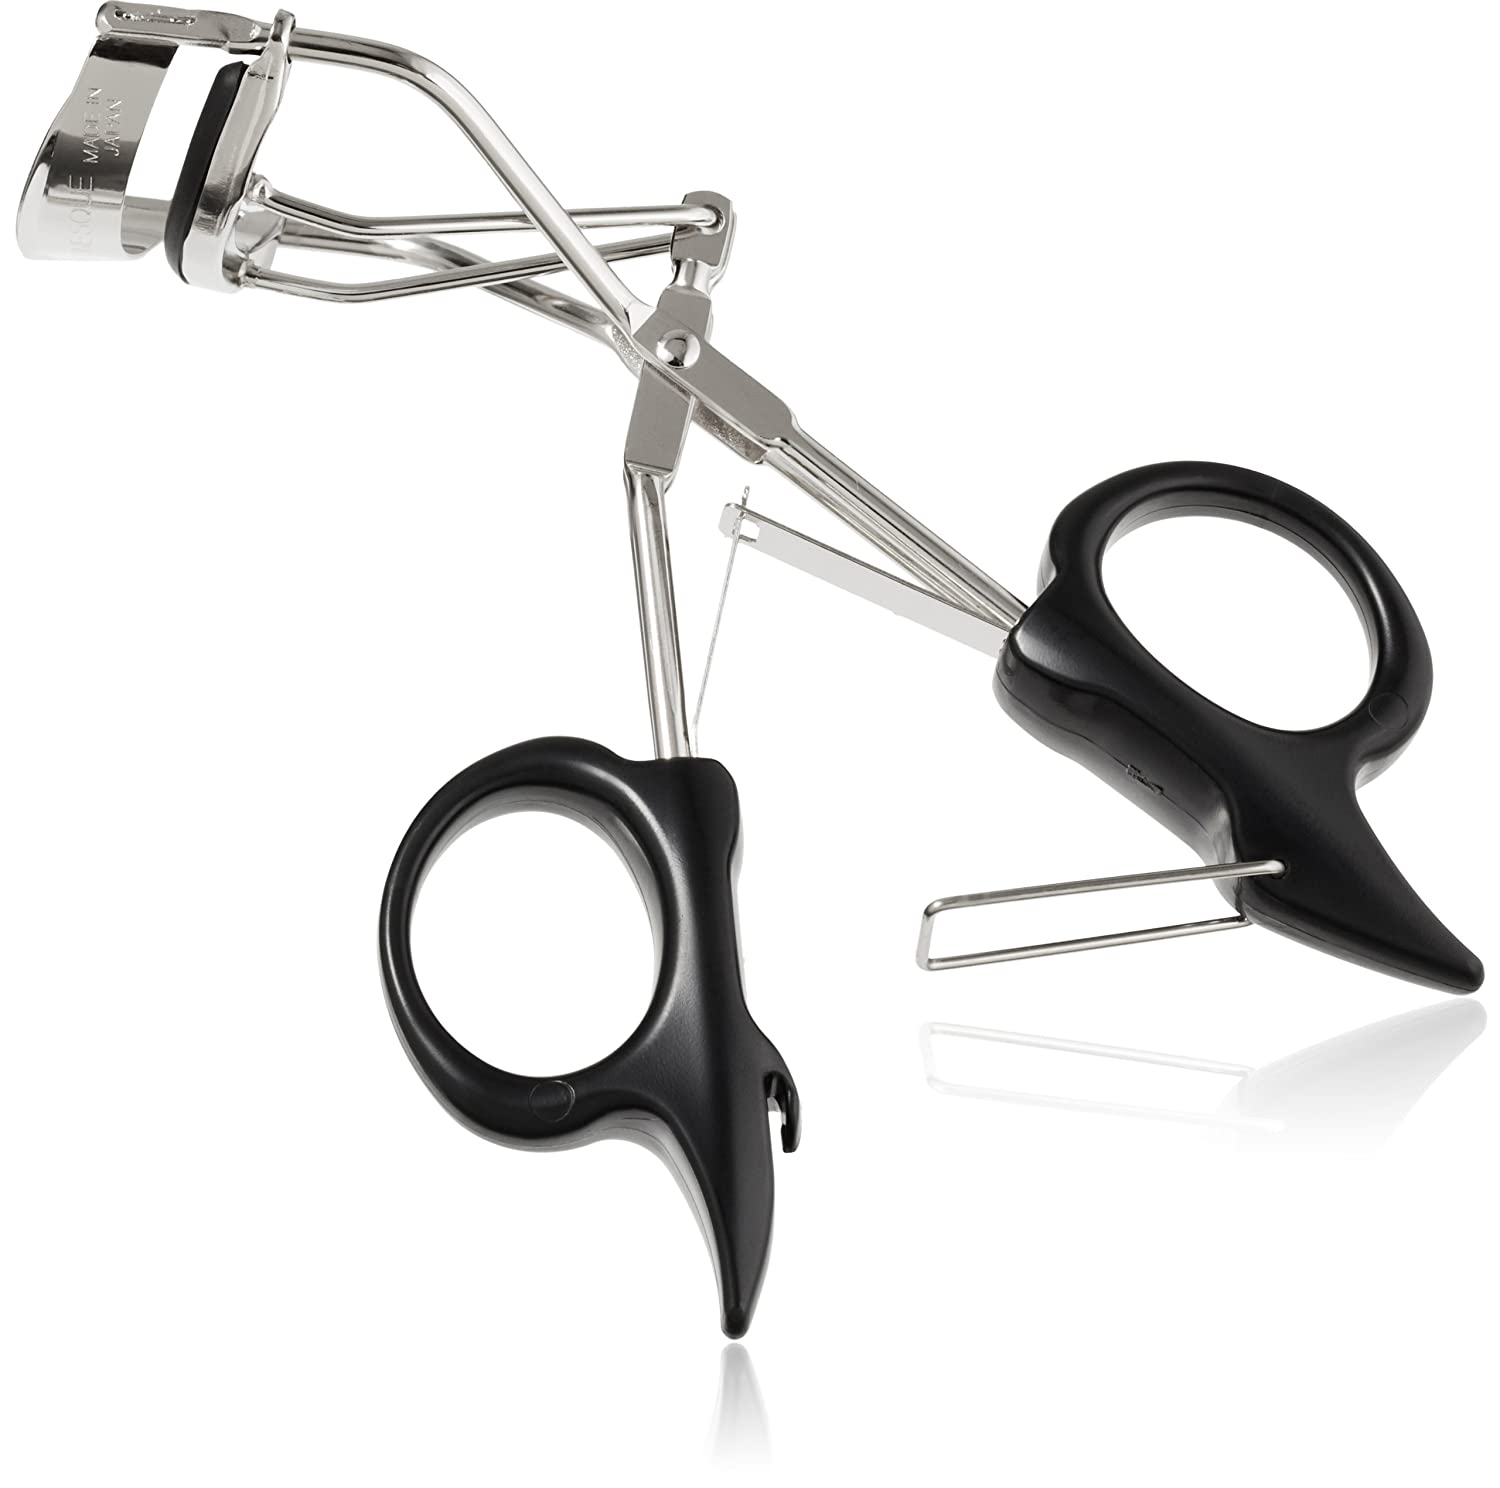 Amazon Japonesque Ergo Grip Eyelash Curler Luxury Beauty